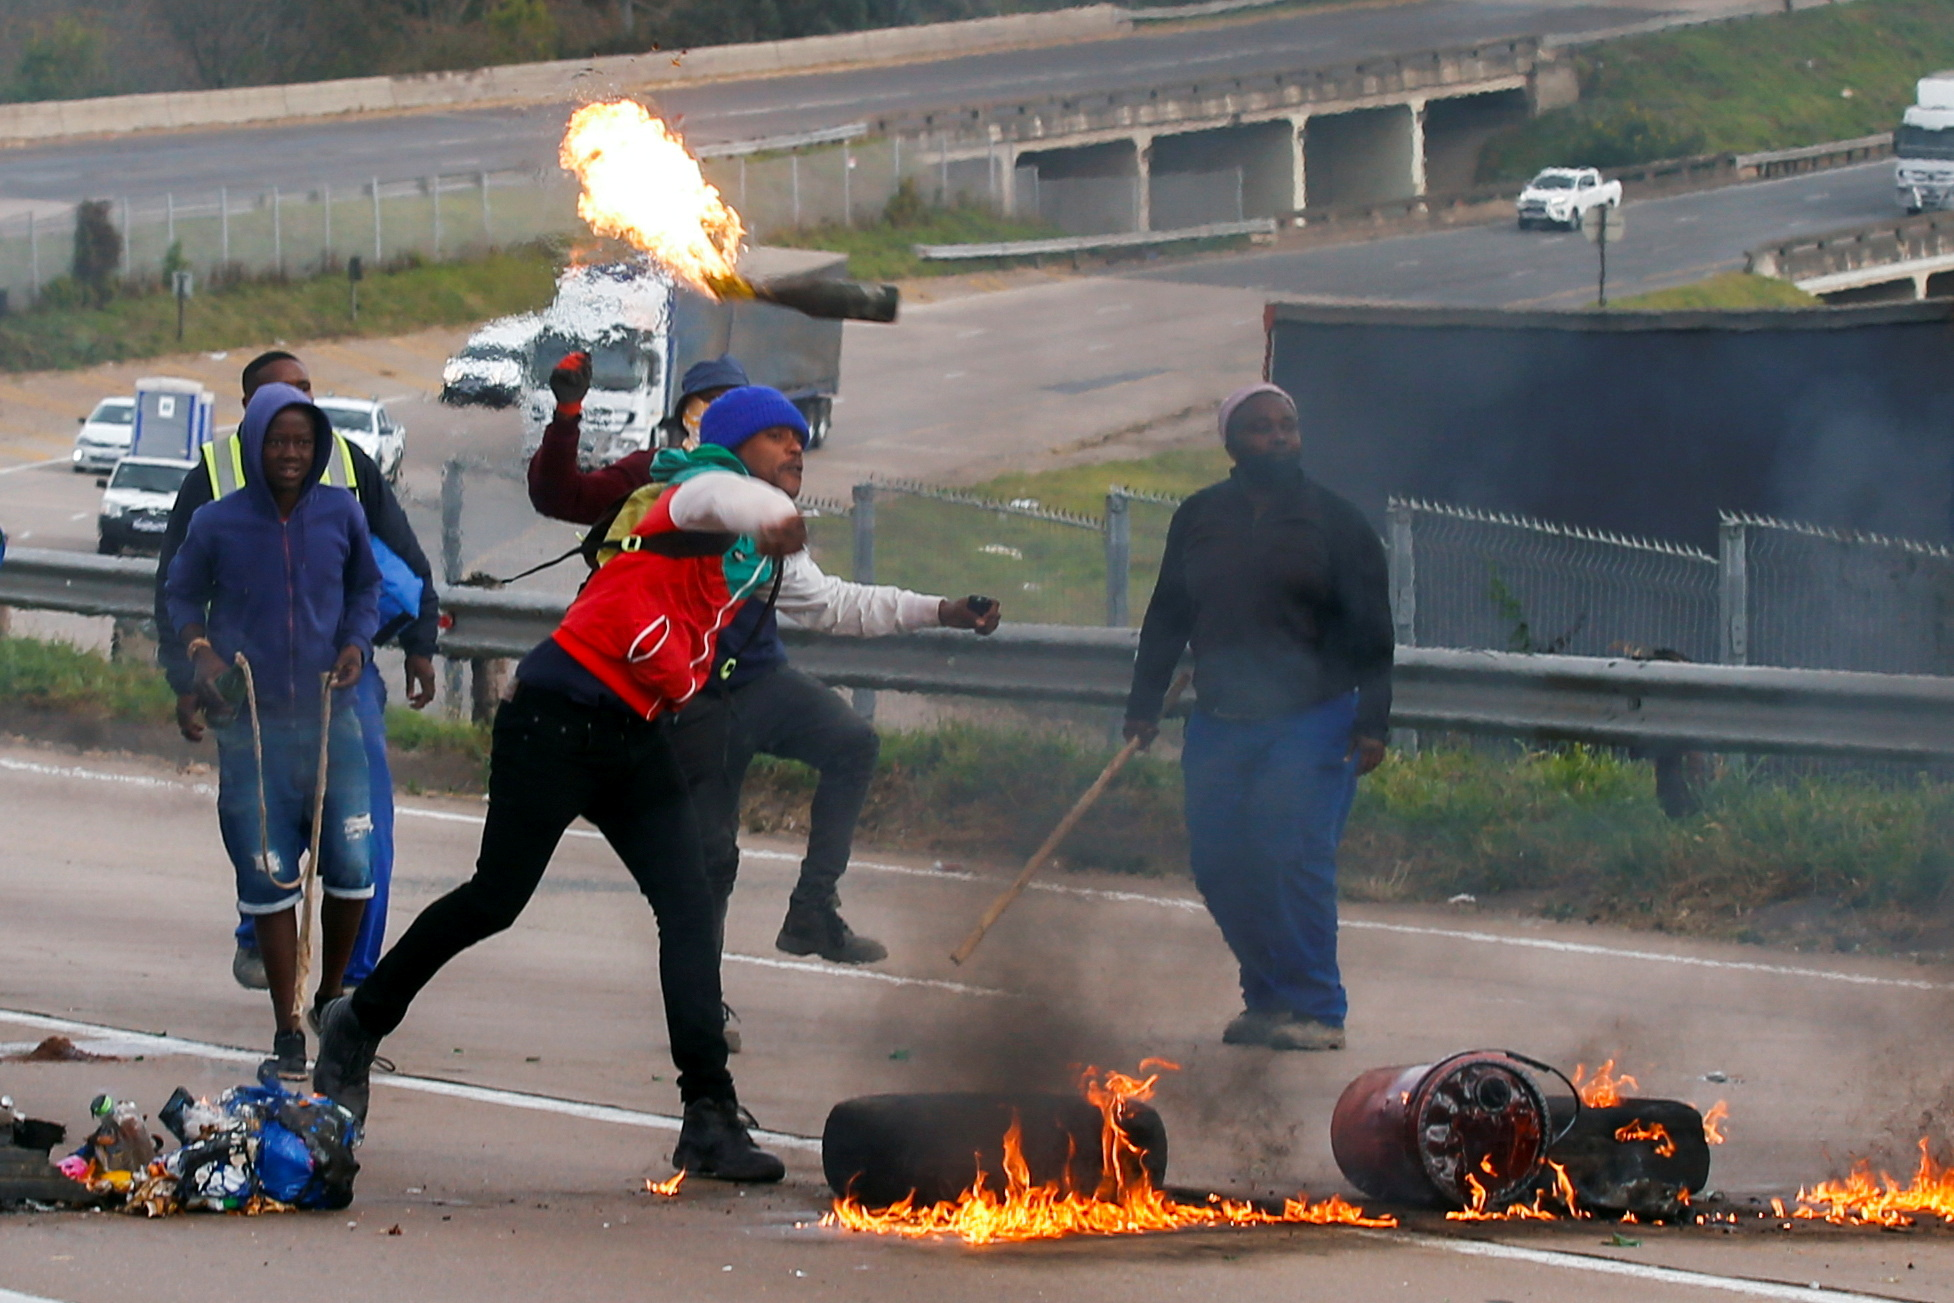 Supporters of former South African President Jacob Zuma block the freeway with burning tyres during a protest in Peacevale, South Africa, July 9, 2021. REUTERS/Rogan Ward/File Photo/File Photo